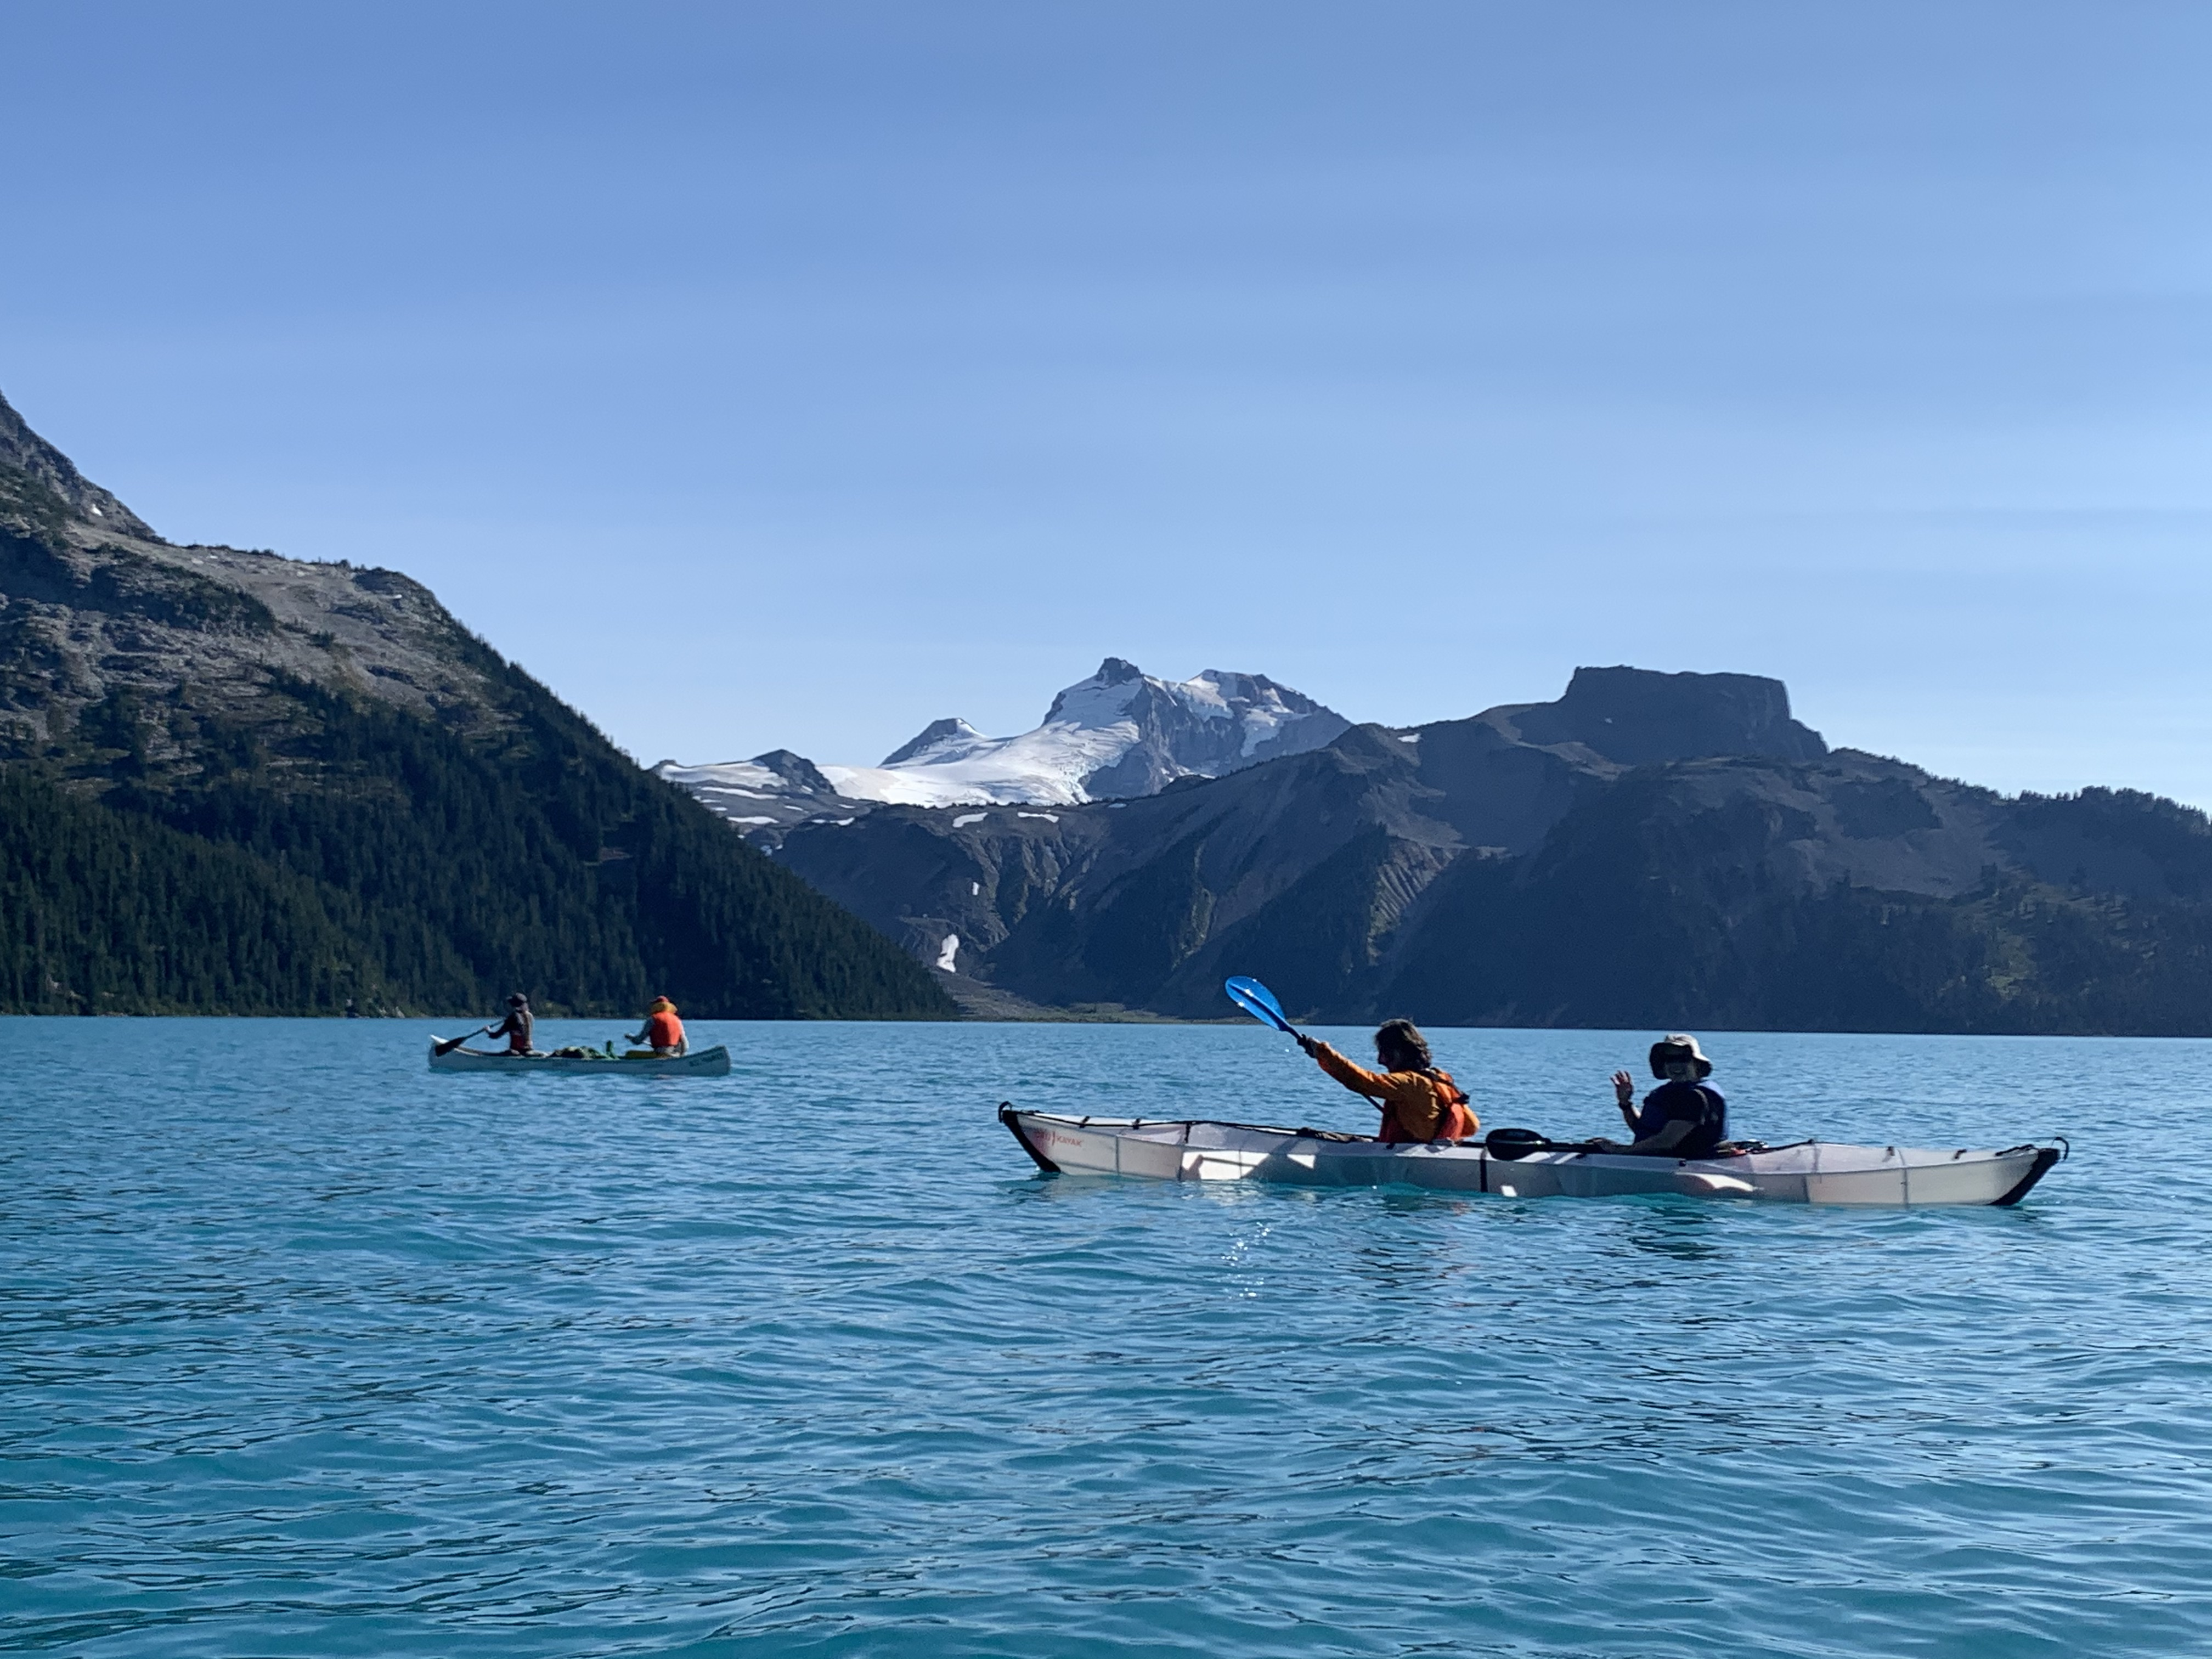 Paddling in front of Mount Garibaldi and Table Mountain. Photo by Haley Foladare